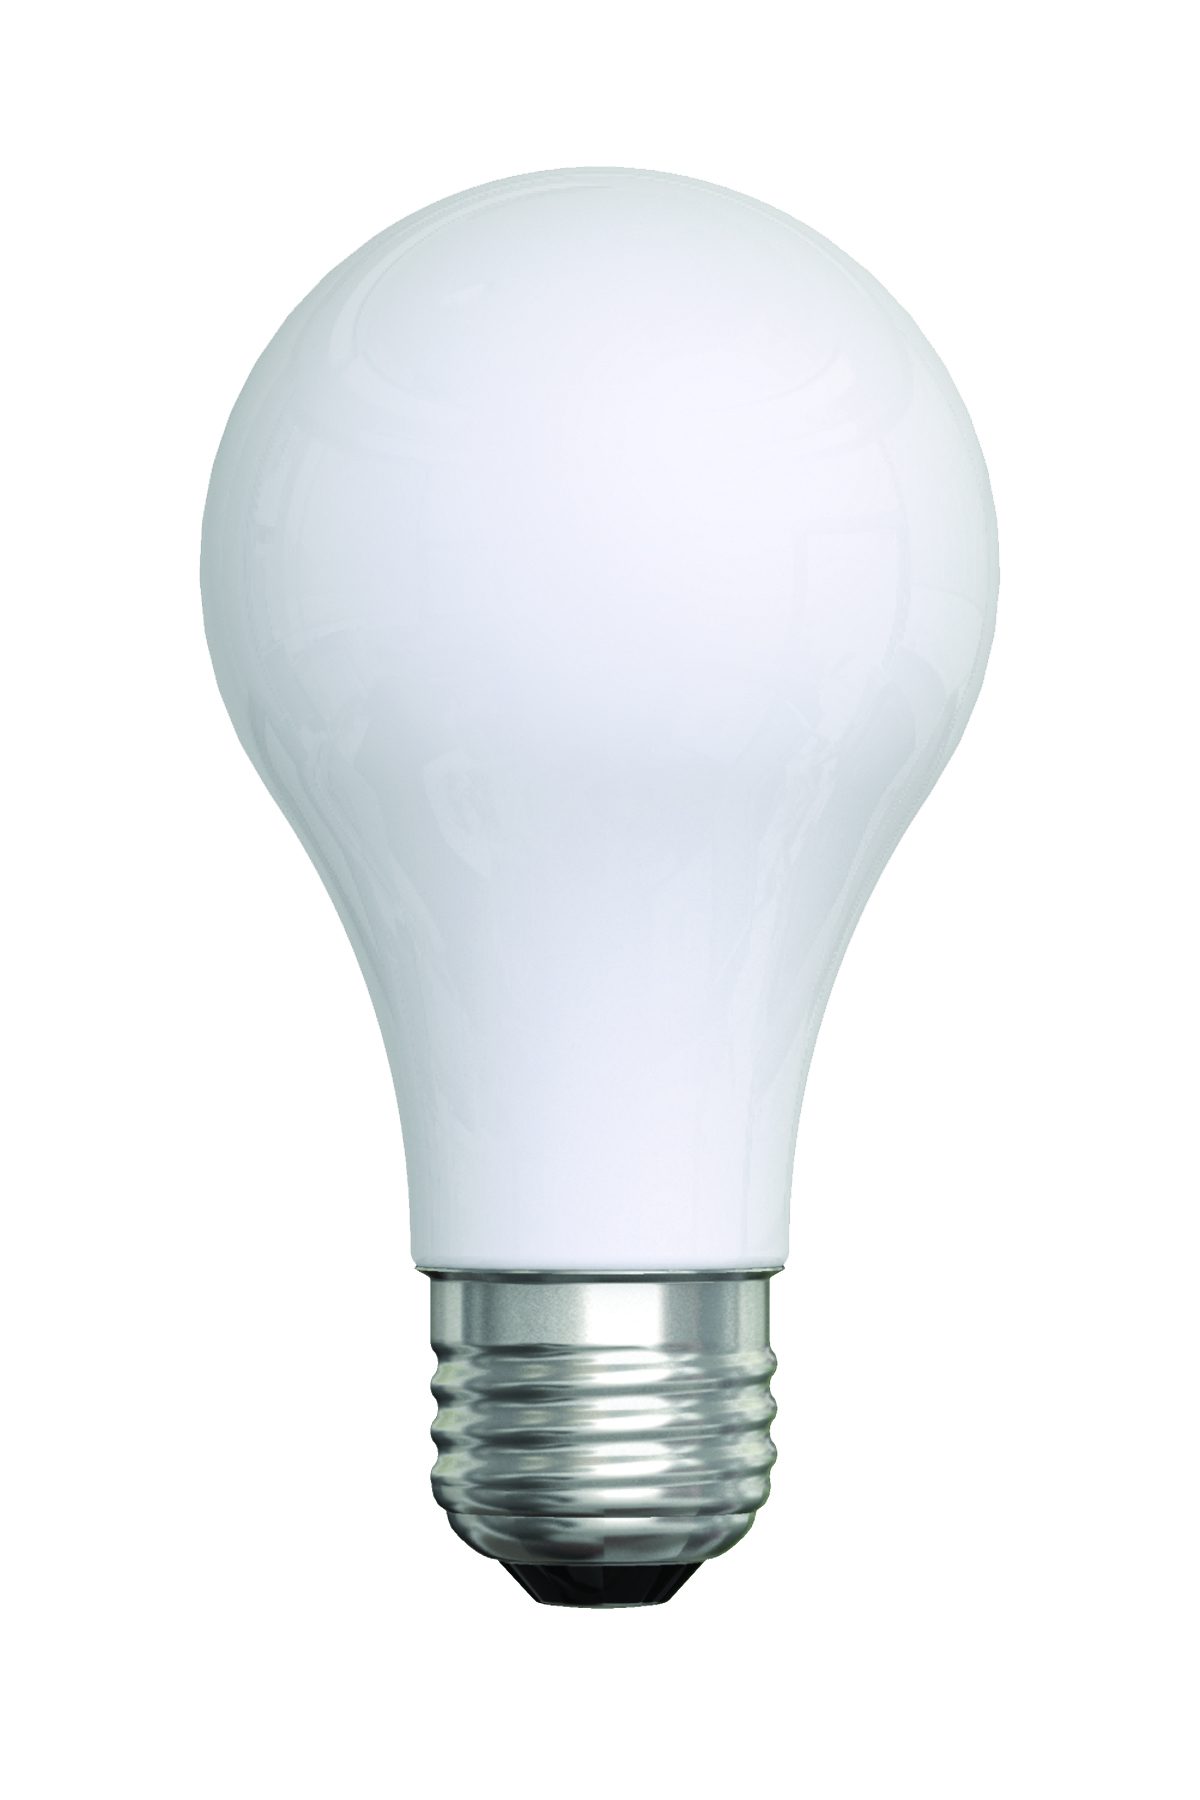 Facts About Incandescent Light Bulb